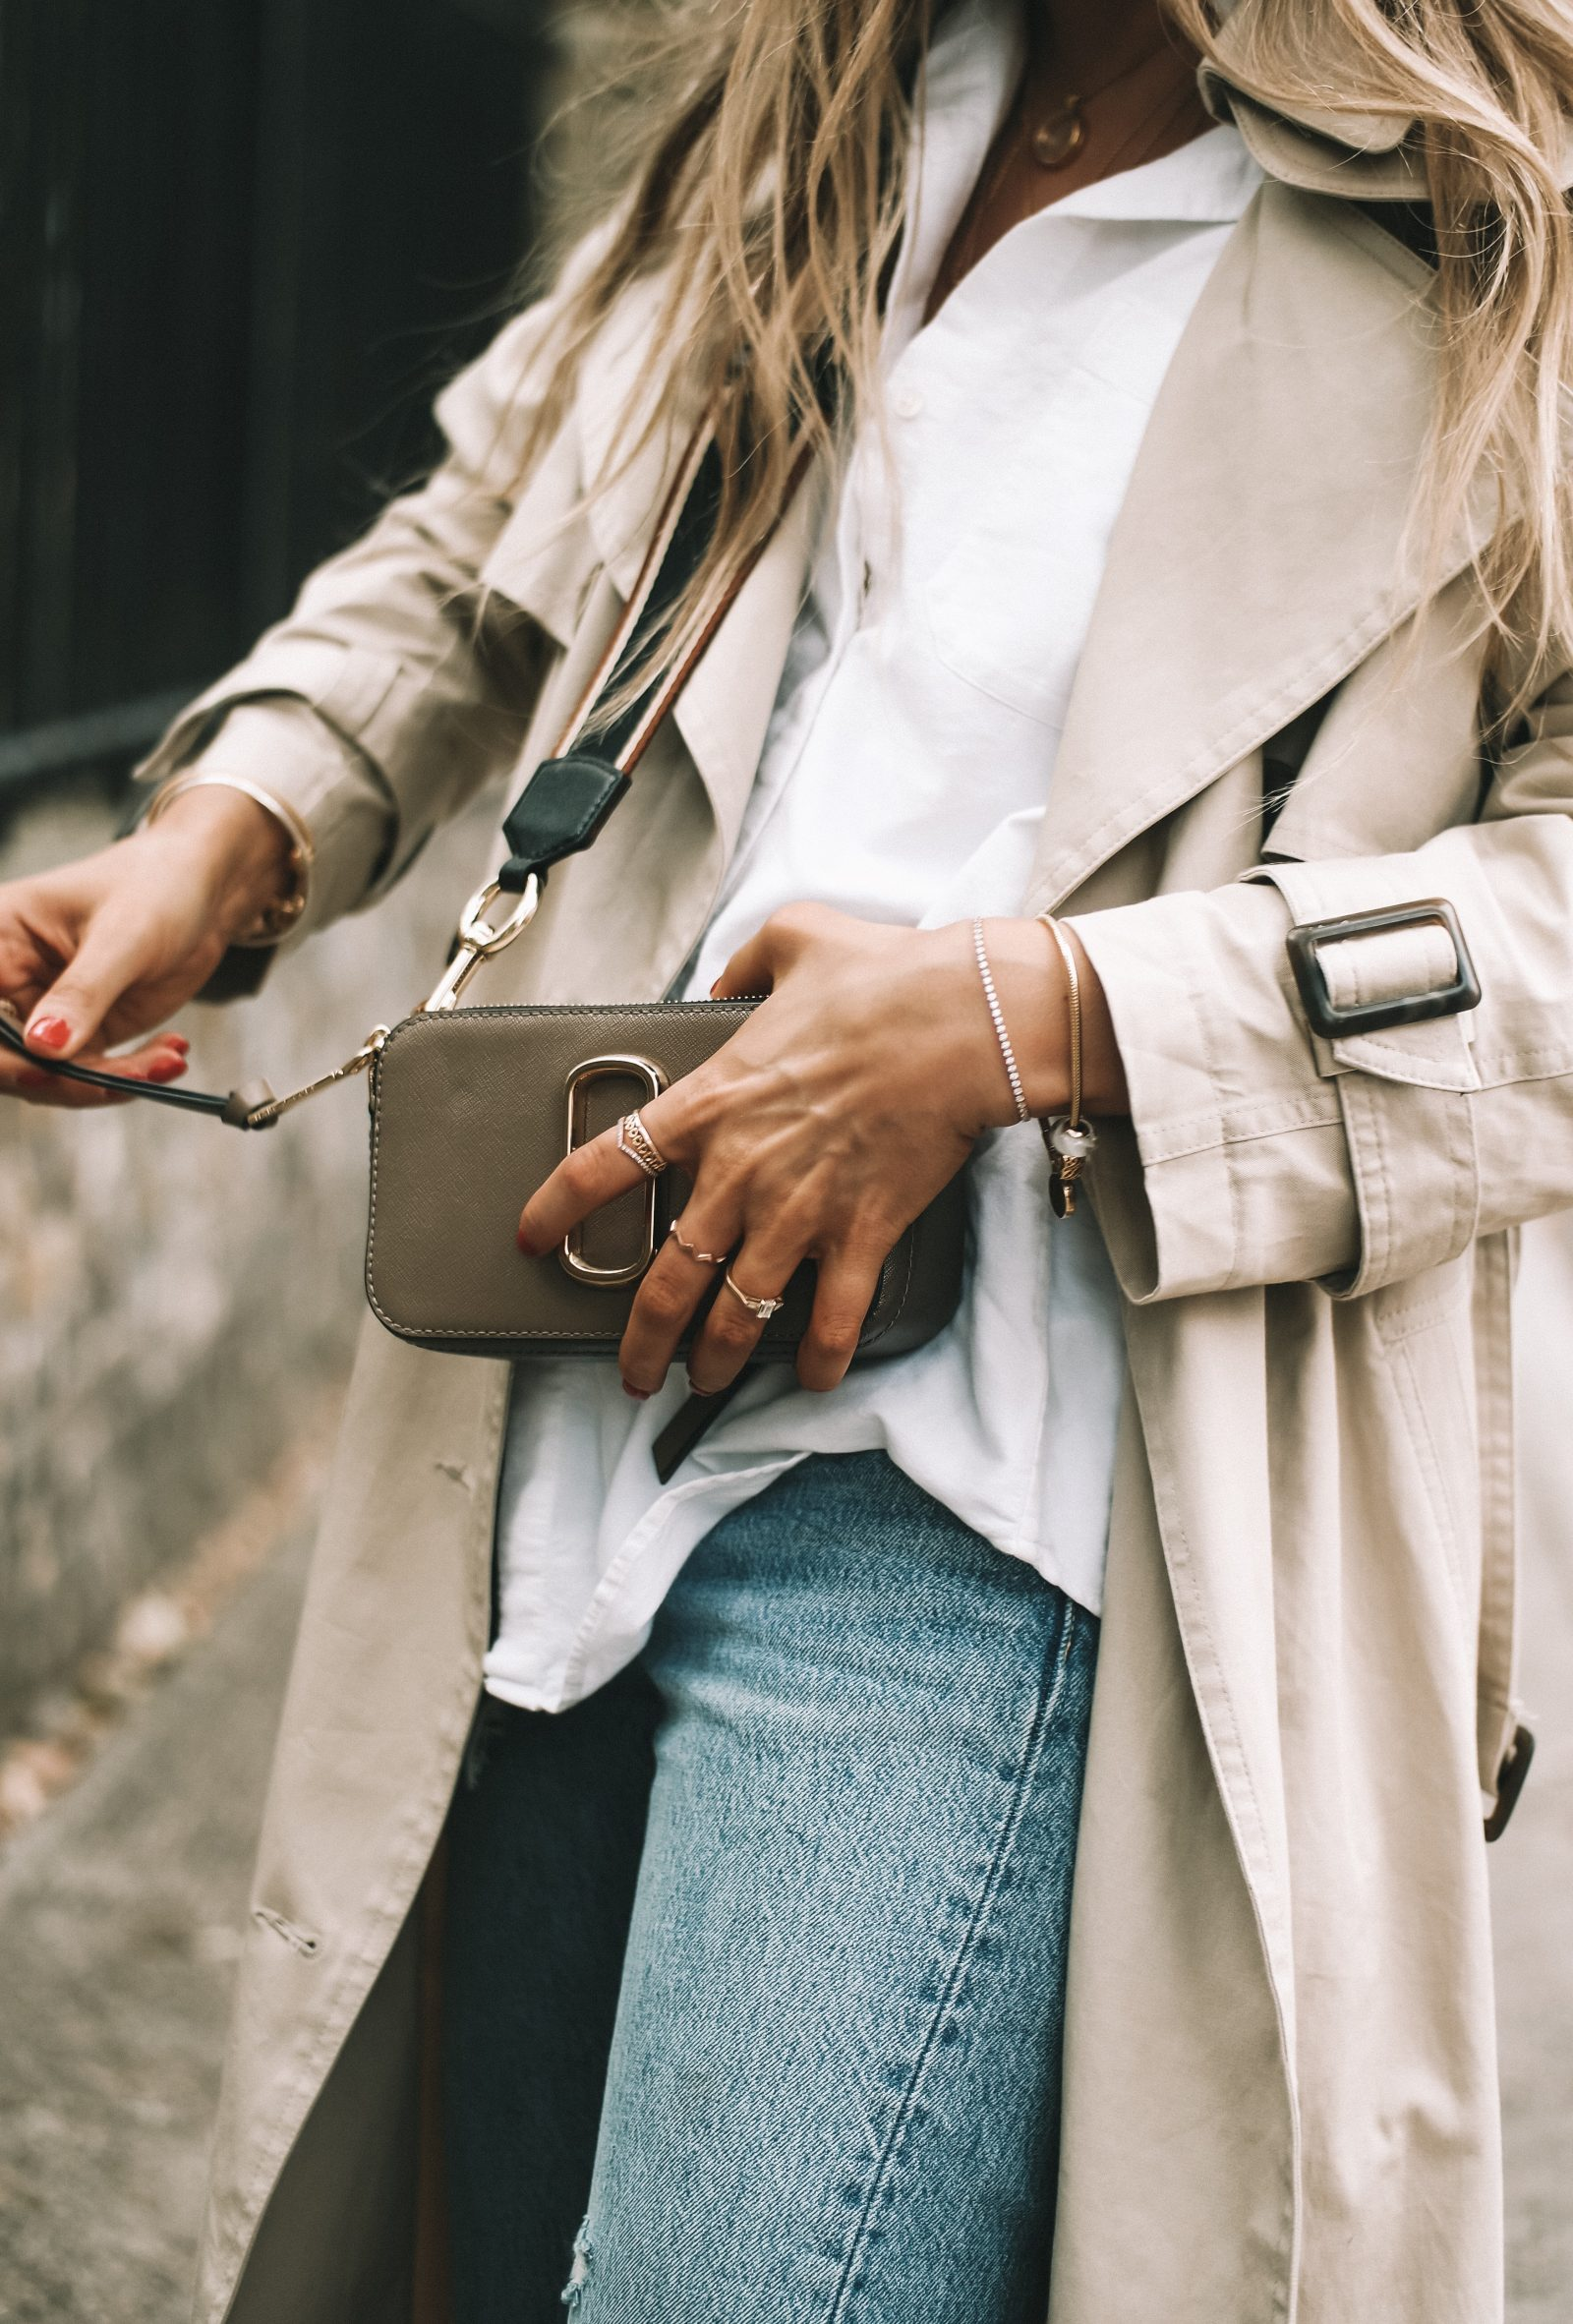 LFW Street Style - Marc Jacobs Camera Bag